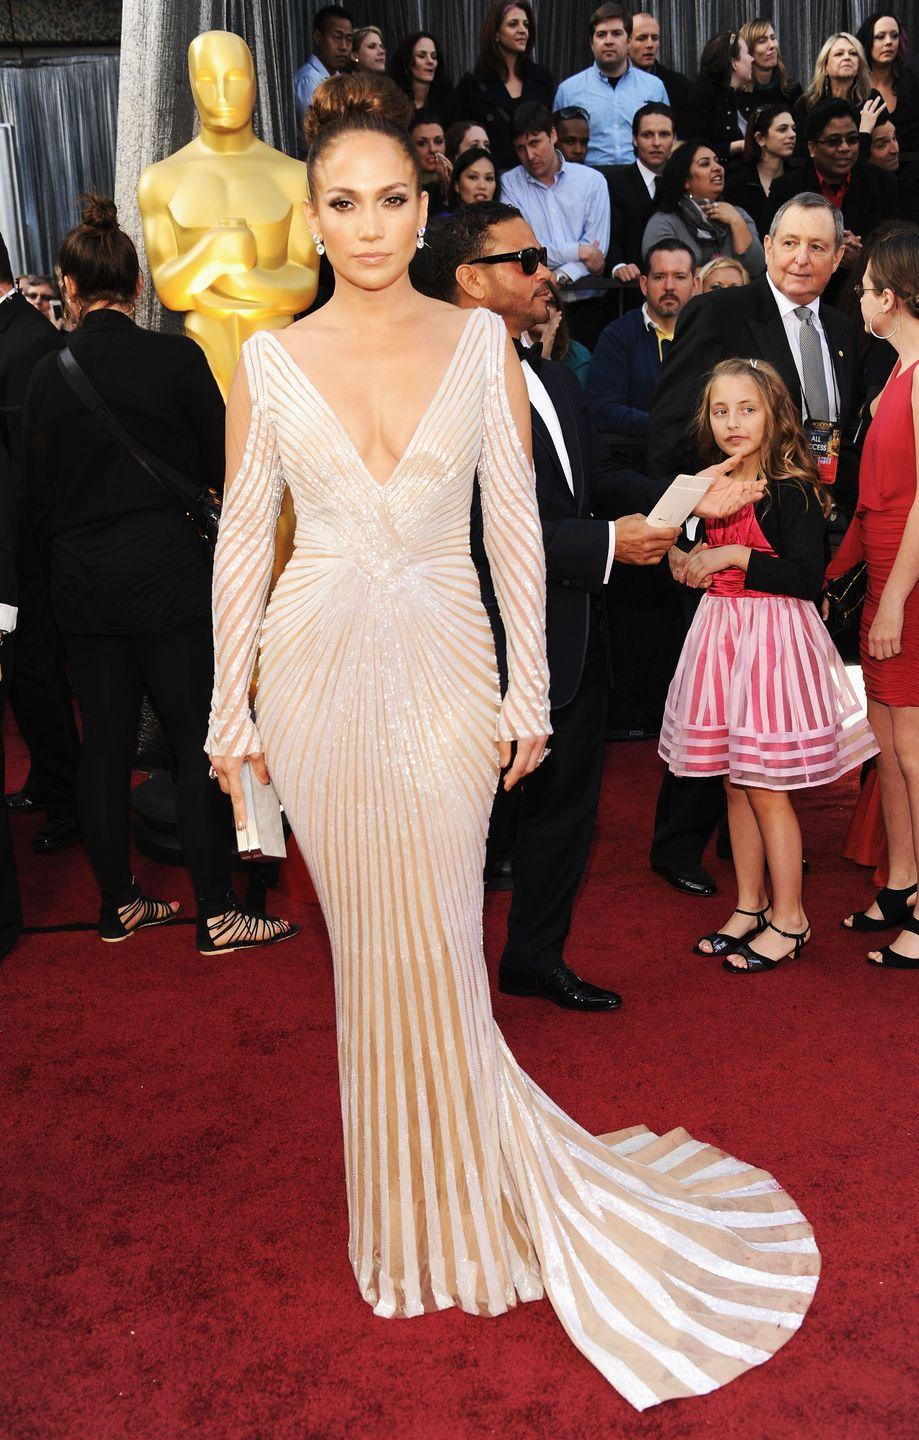 <p>J.Lo attends the Academy Awards in a plunging striped gown, which also has a major backless moment. Also, she's way ahead of the cold-shoulder trend! </p>